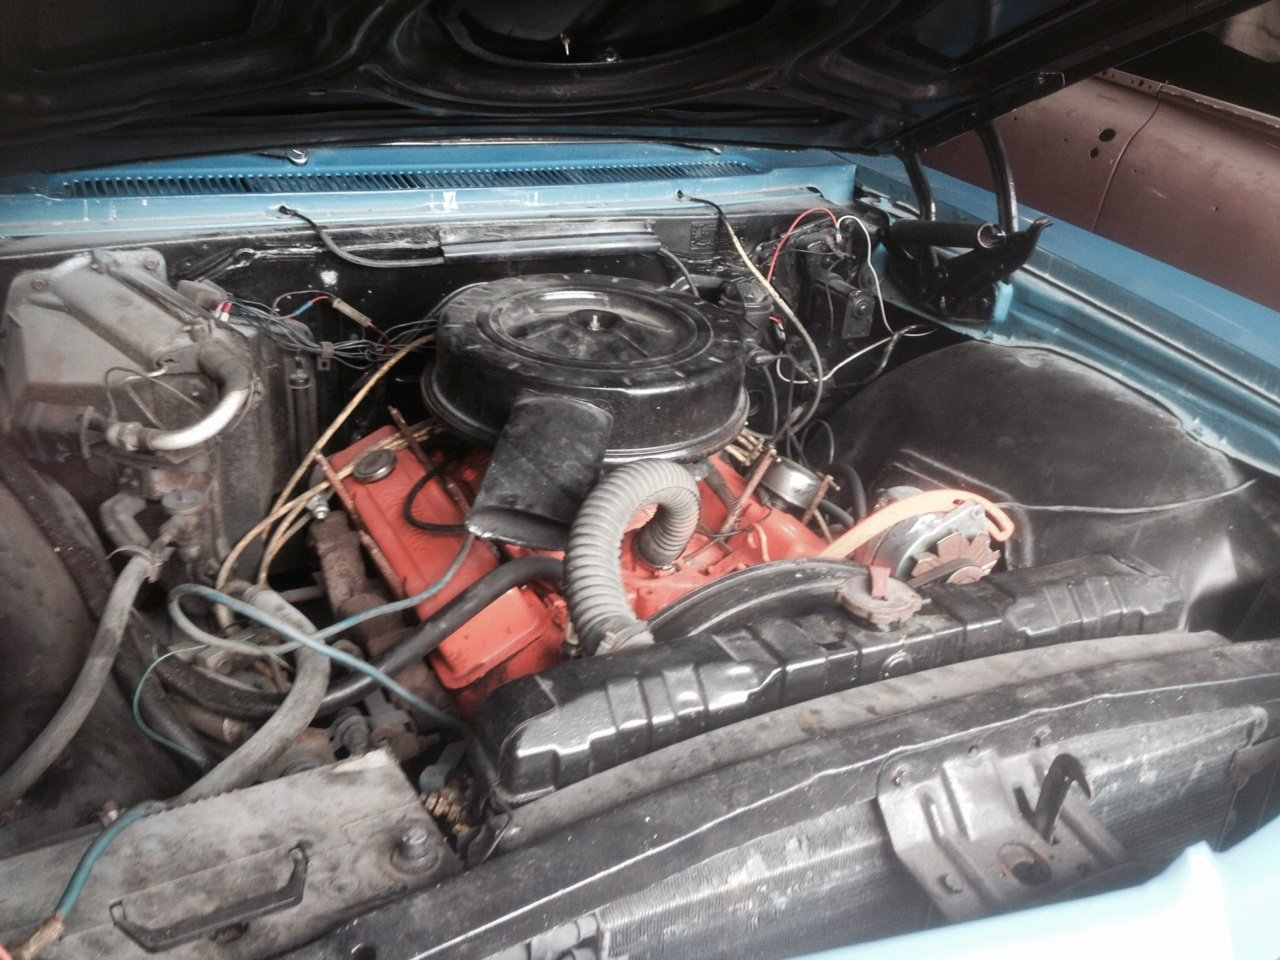 1965 IMPALA V8 AUTO TEXAS CAR IN UK V5 For Sale (picture 2 of 6)